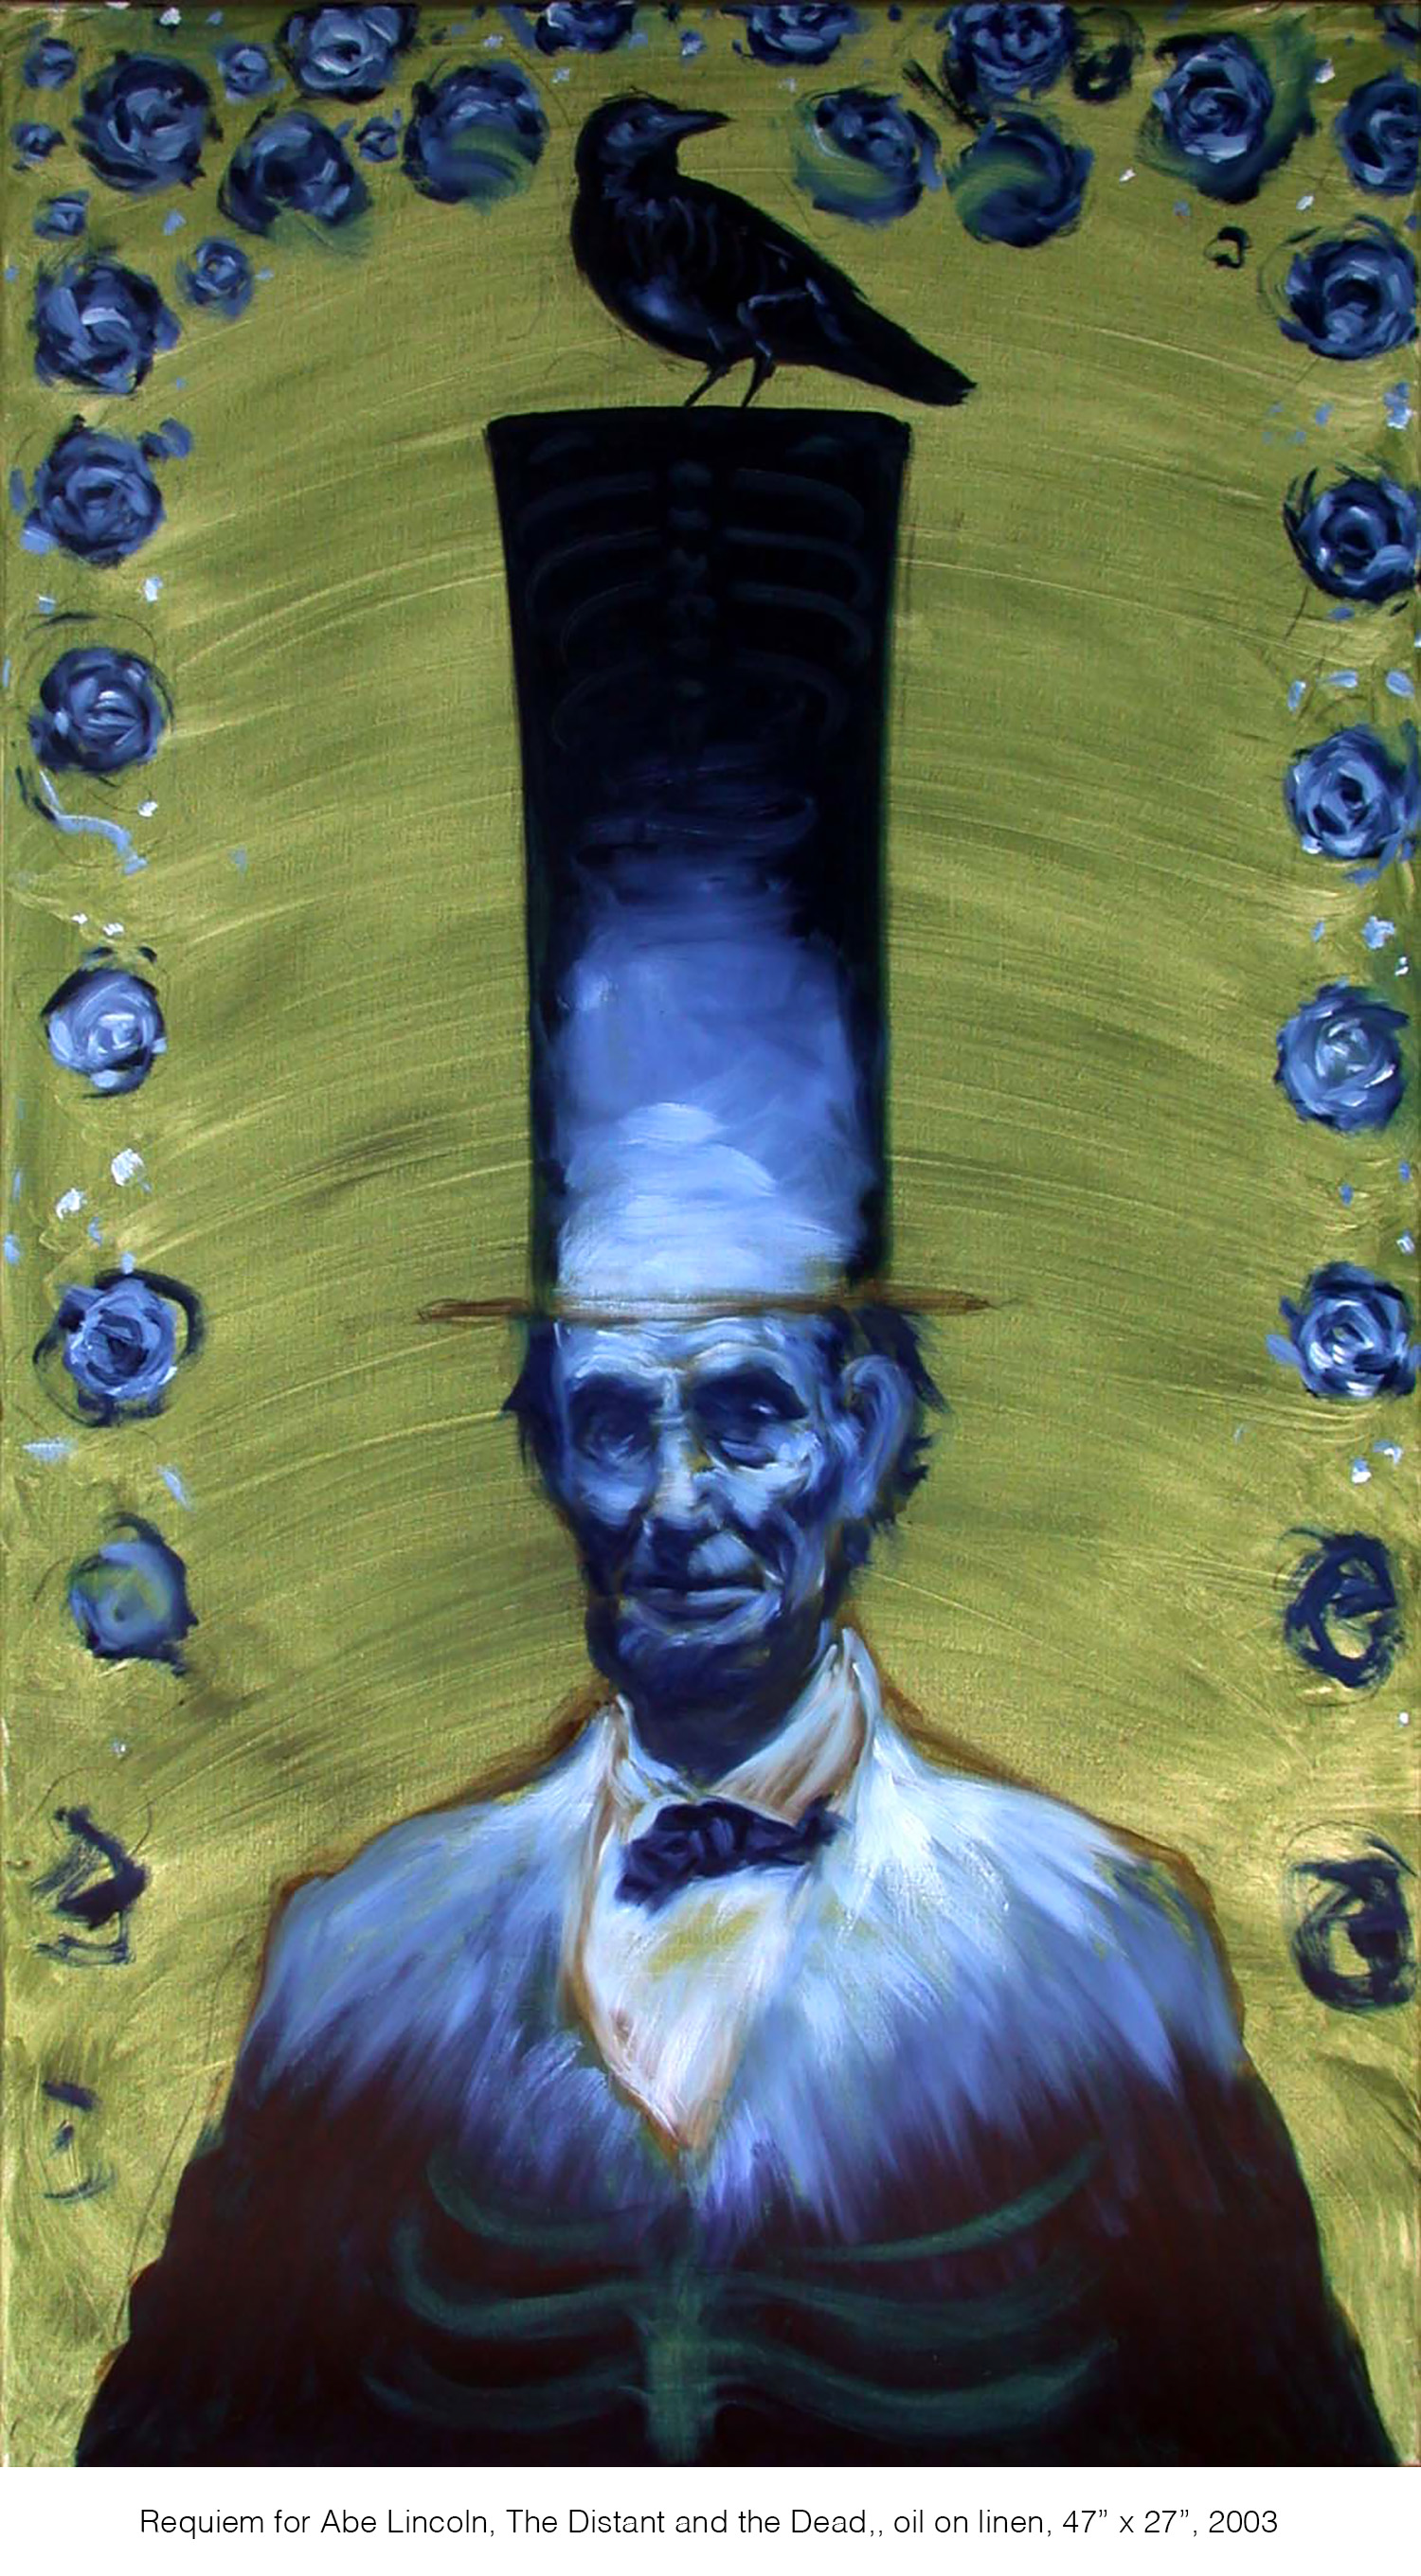 The Anatomy of Abe Lincoln_1500.jpg